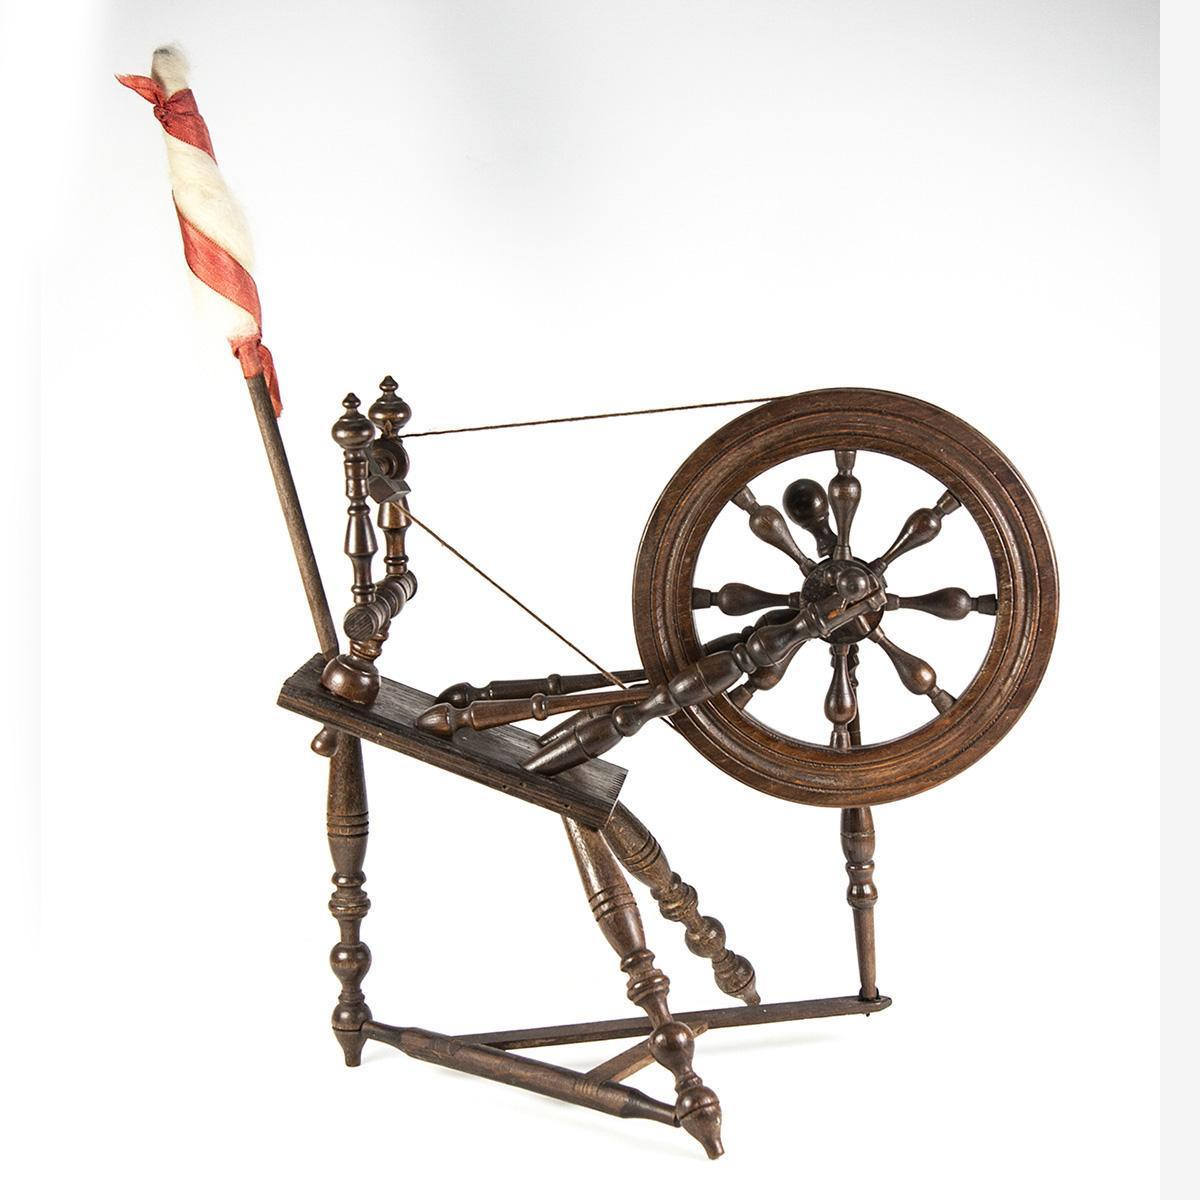 """Antique Doll House Sized Spinning Wheel, Turned Wood, For Bru or Similar Doll, 11"""" tall + Stick"""